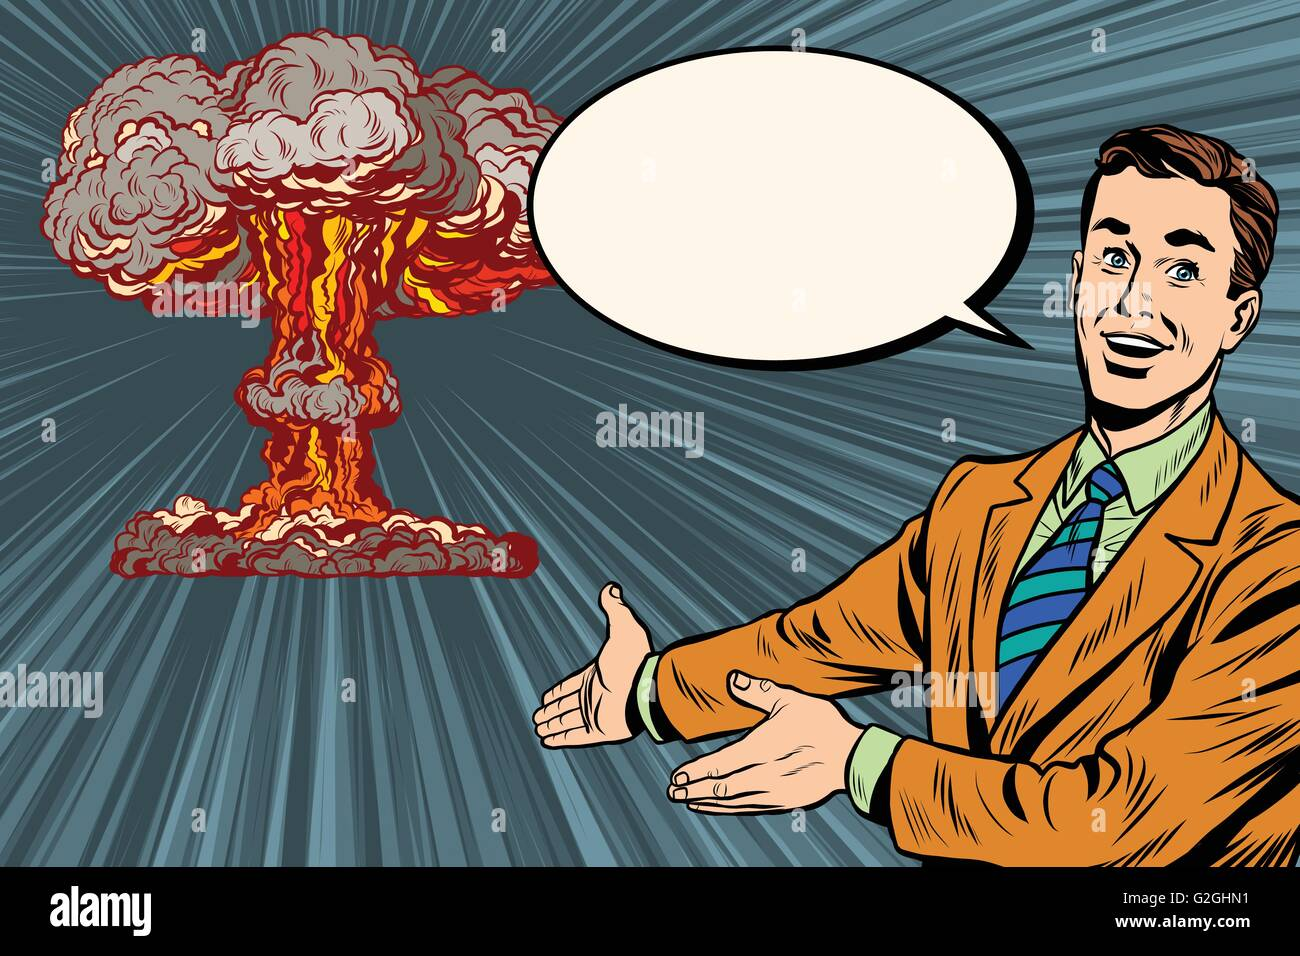 Nuclear explosion lecture on radiation safety - Stock Vector